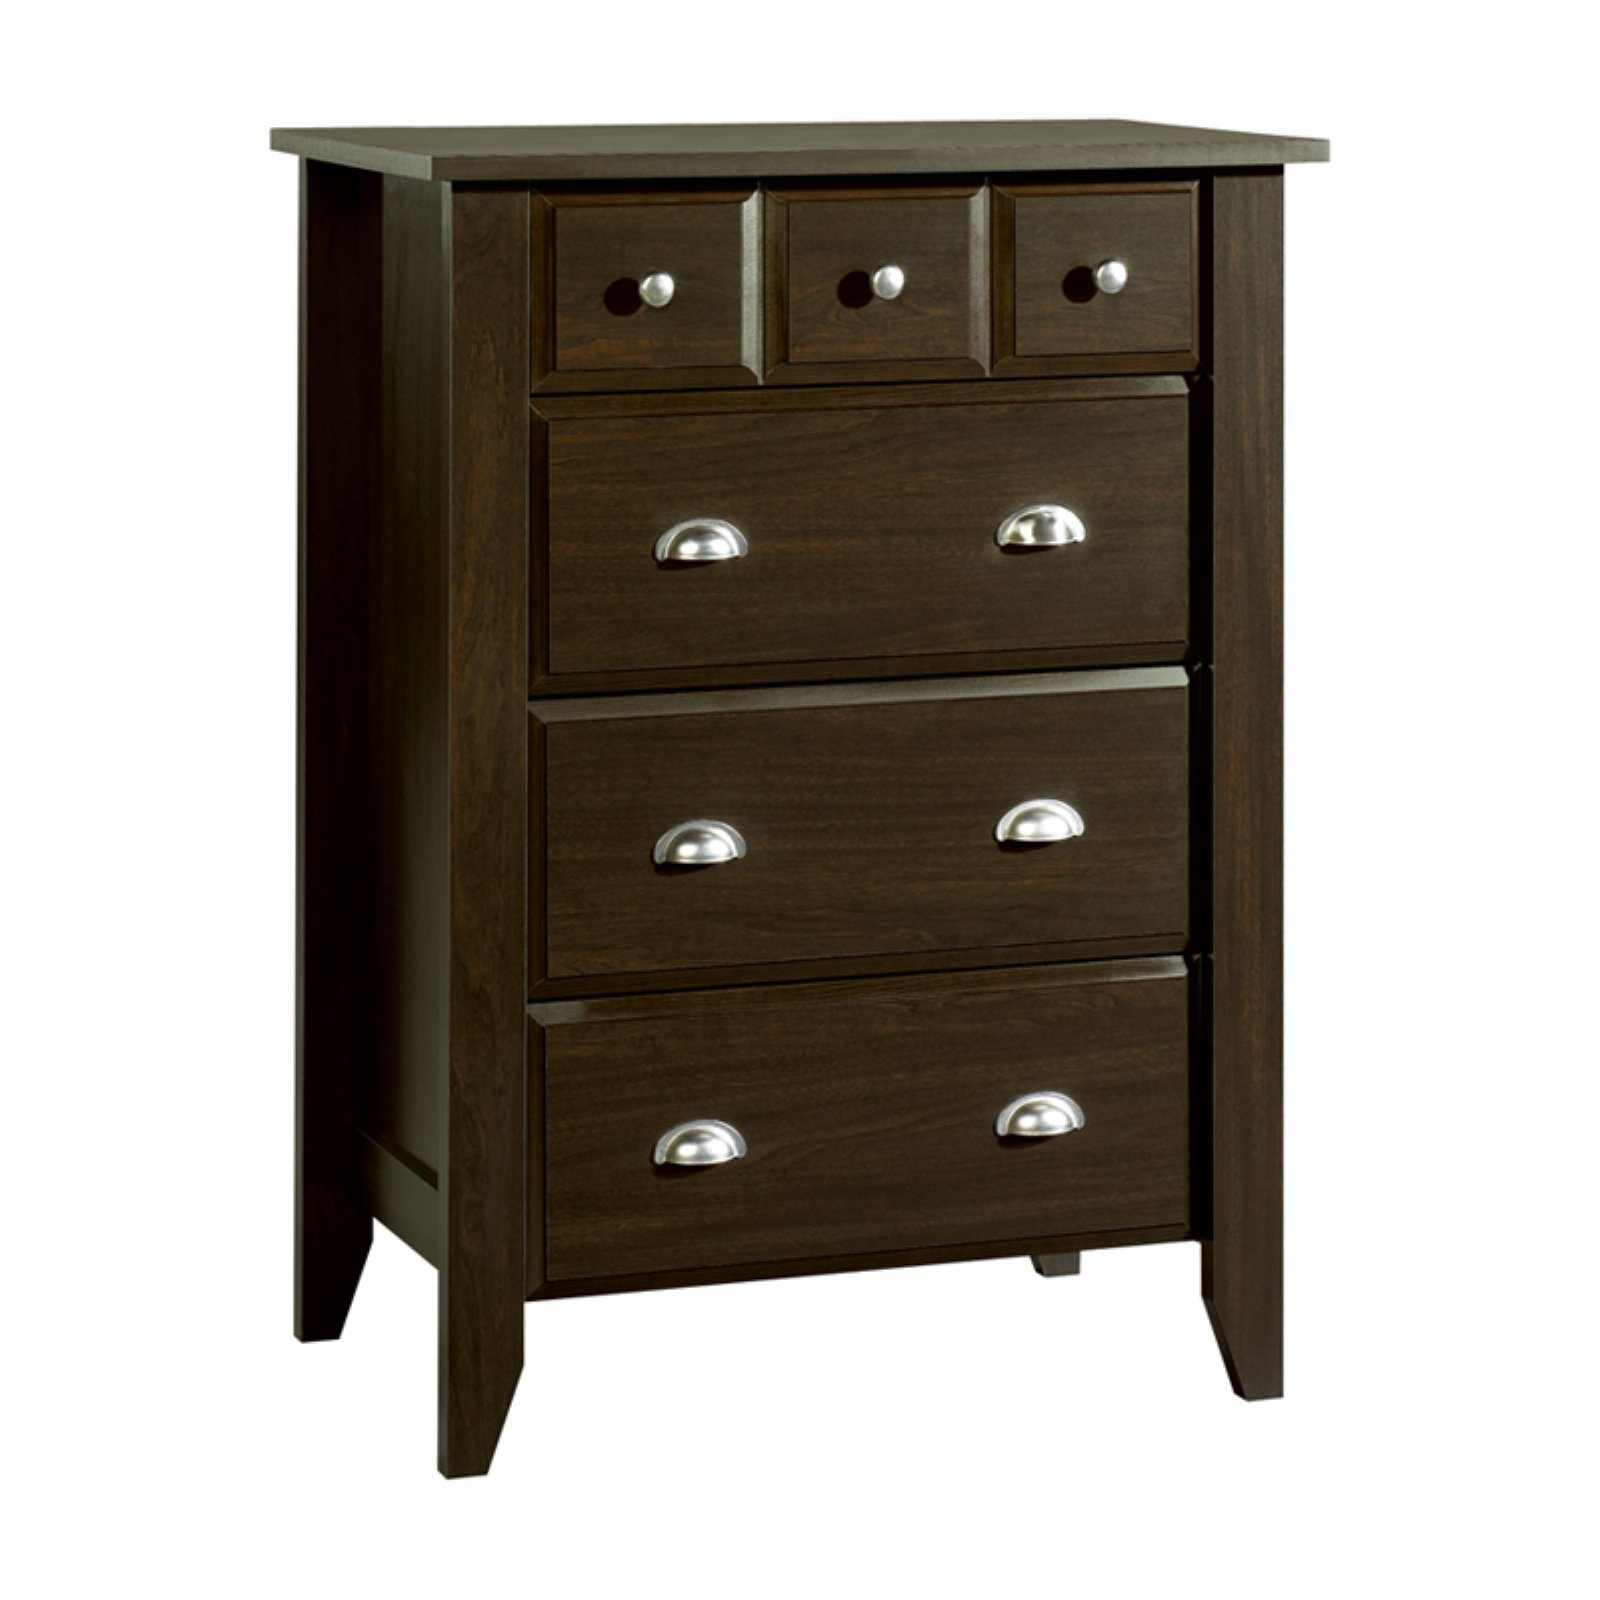 Child Craft Relaxed Traditional 4 Drawer Chest, Jamocha by Foundations Worldwide, Inc.